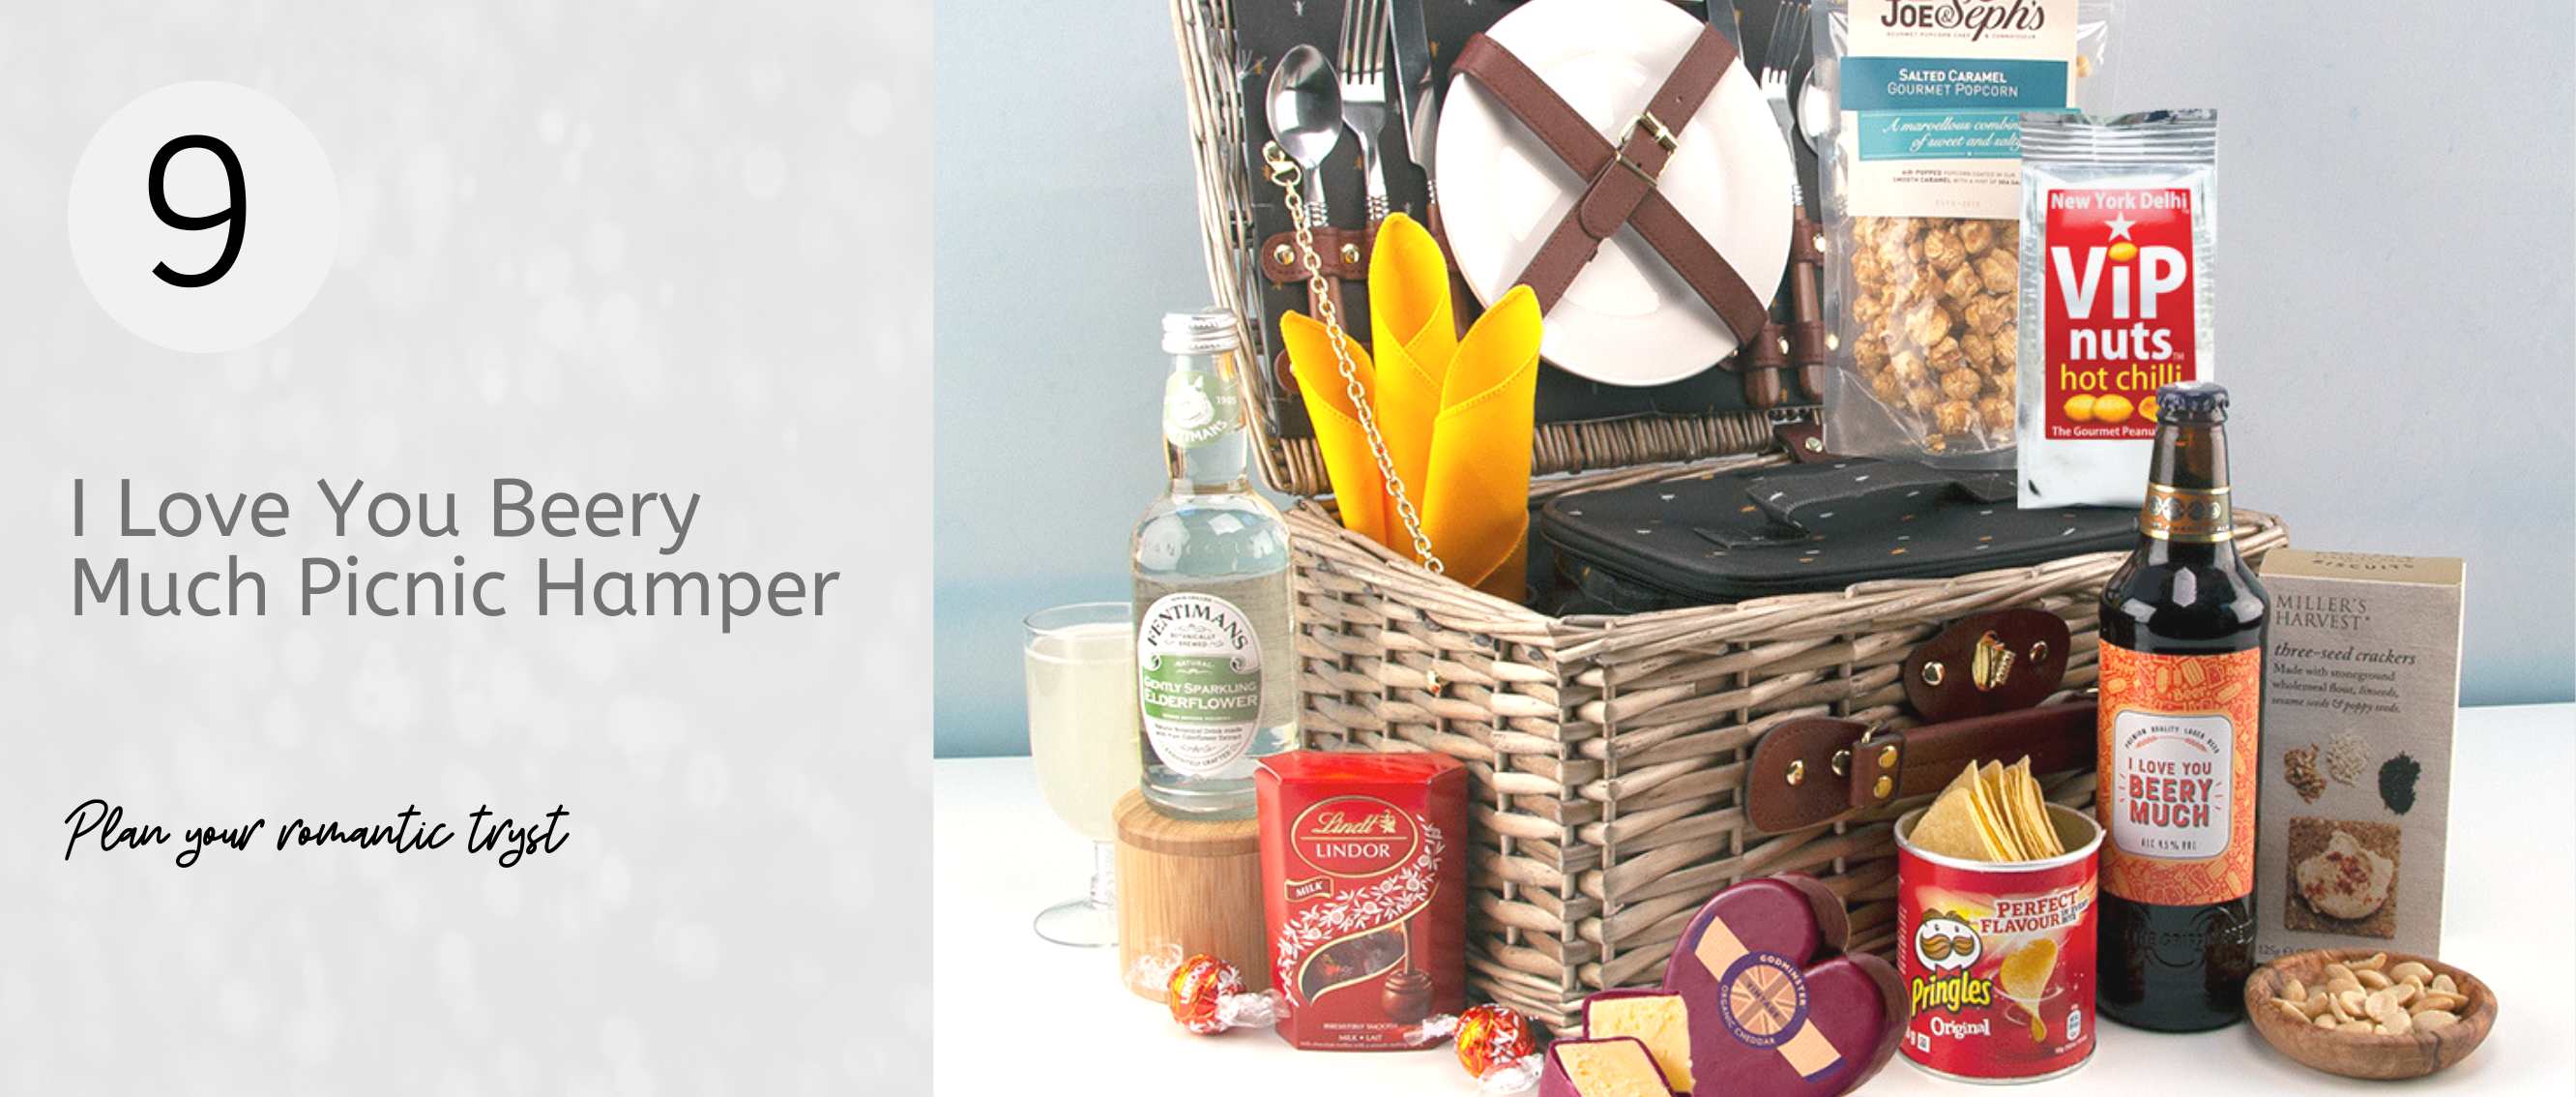 Plan your next romantic tryst with this lovely picnic hamper for two filled with delicious food and drink...